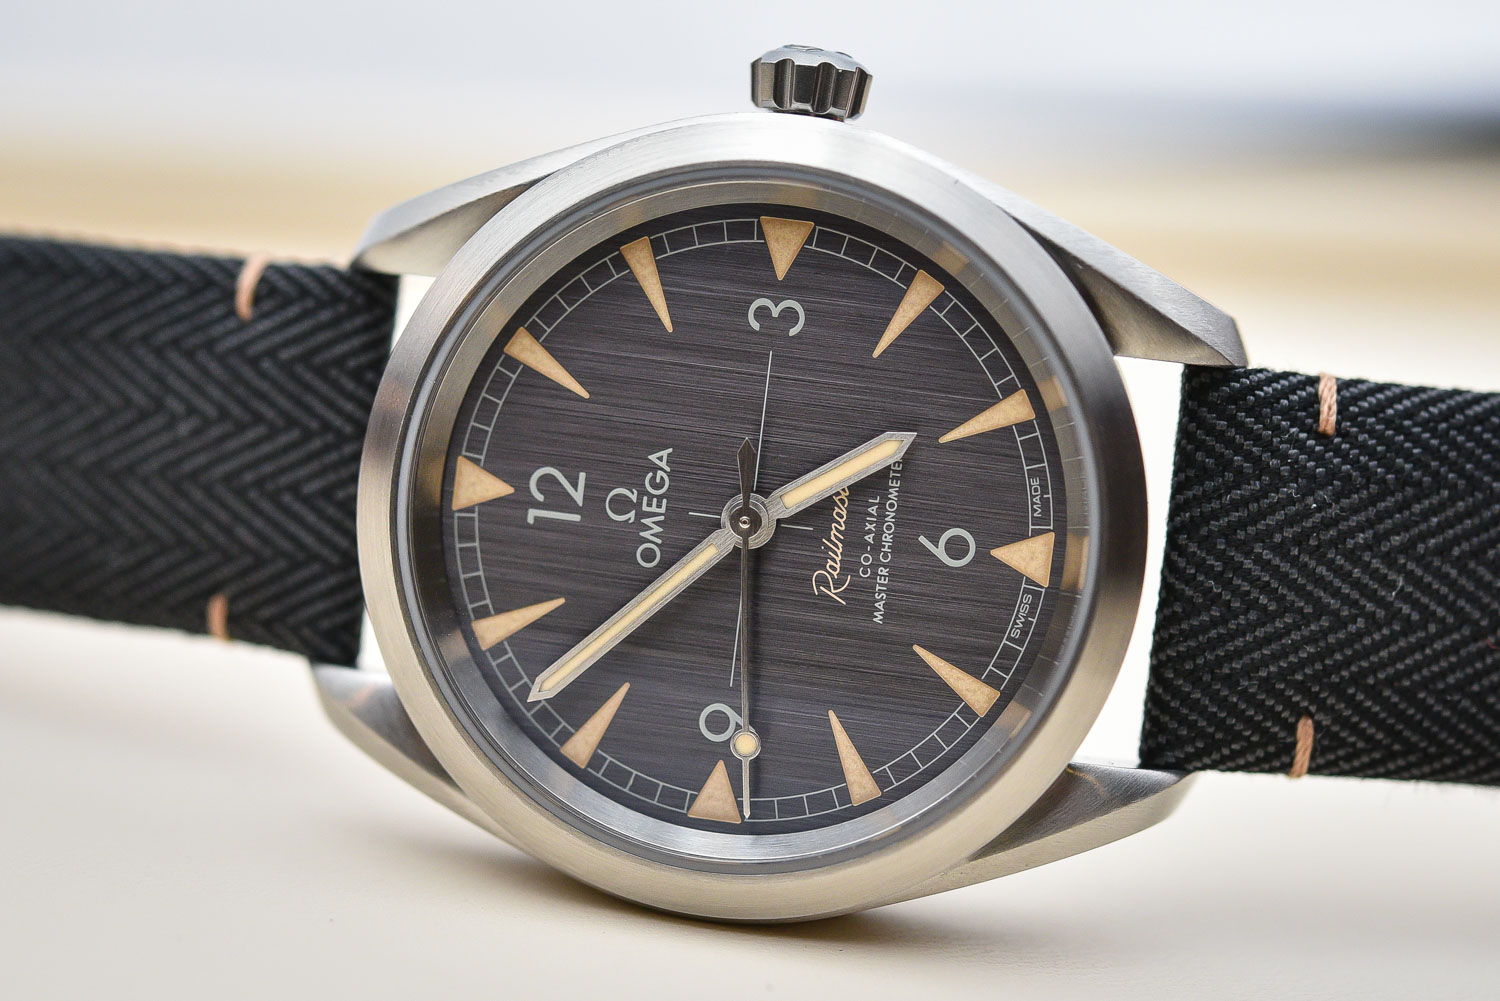 Omega Railmaster Master Chronometer Collection - Baselworld 2017 - Review Price